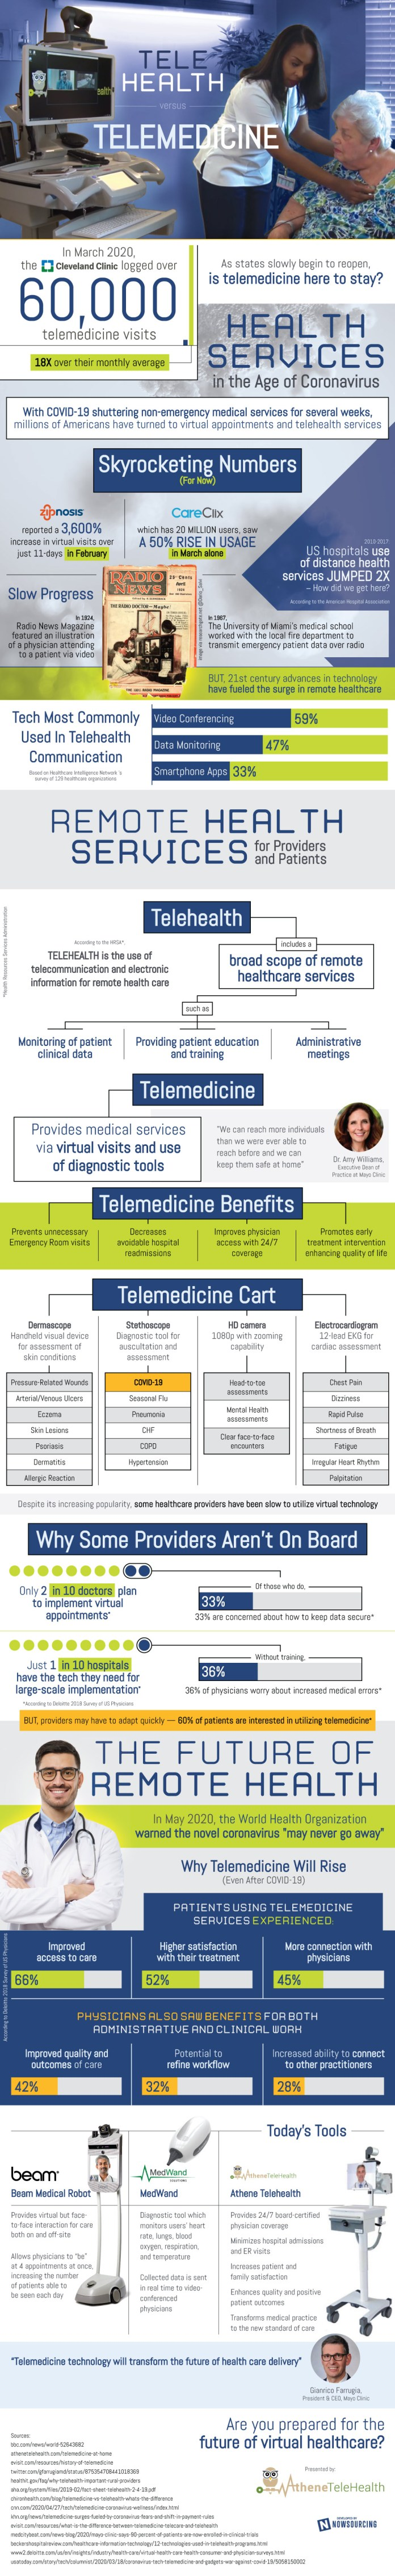 The Rising Popularity Of Telemedicine 1